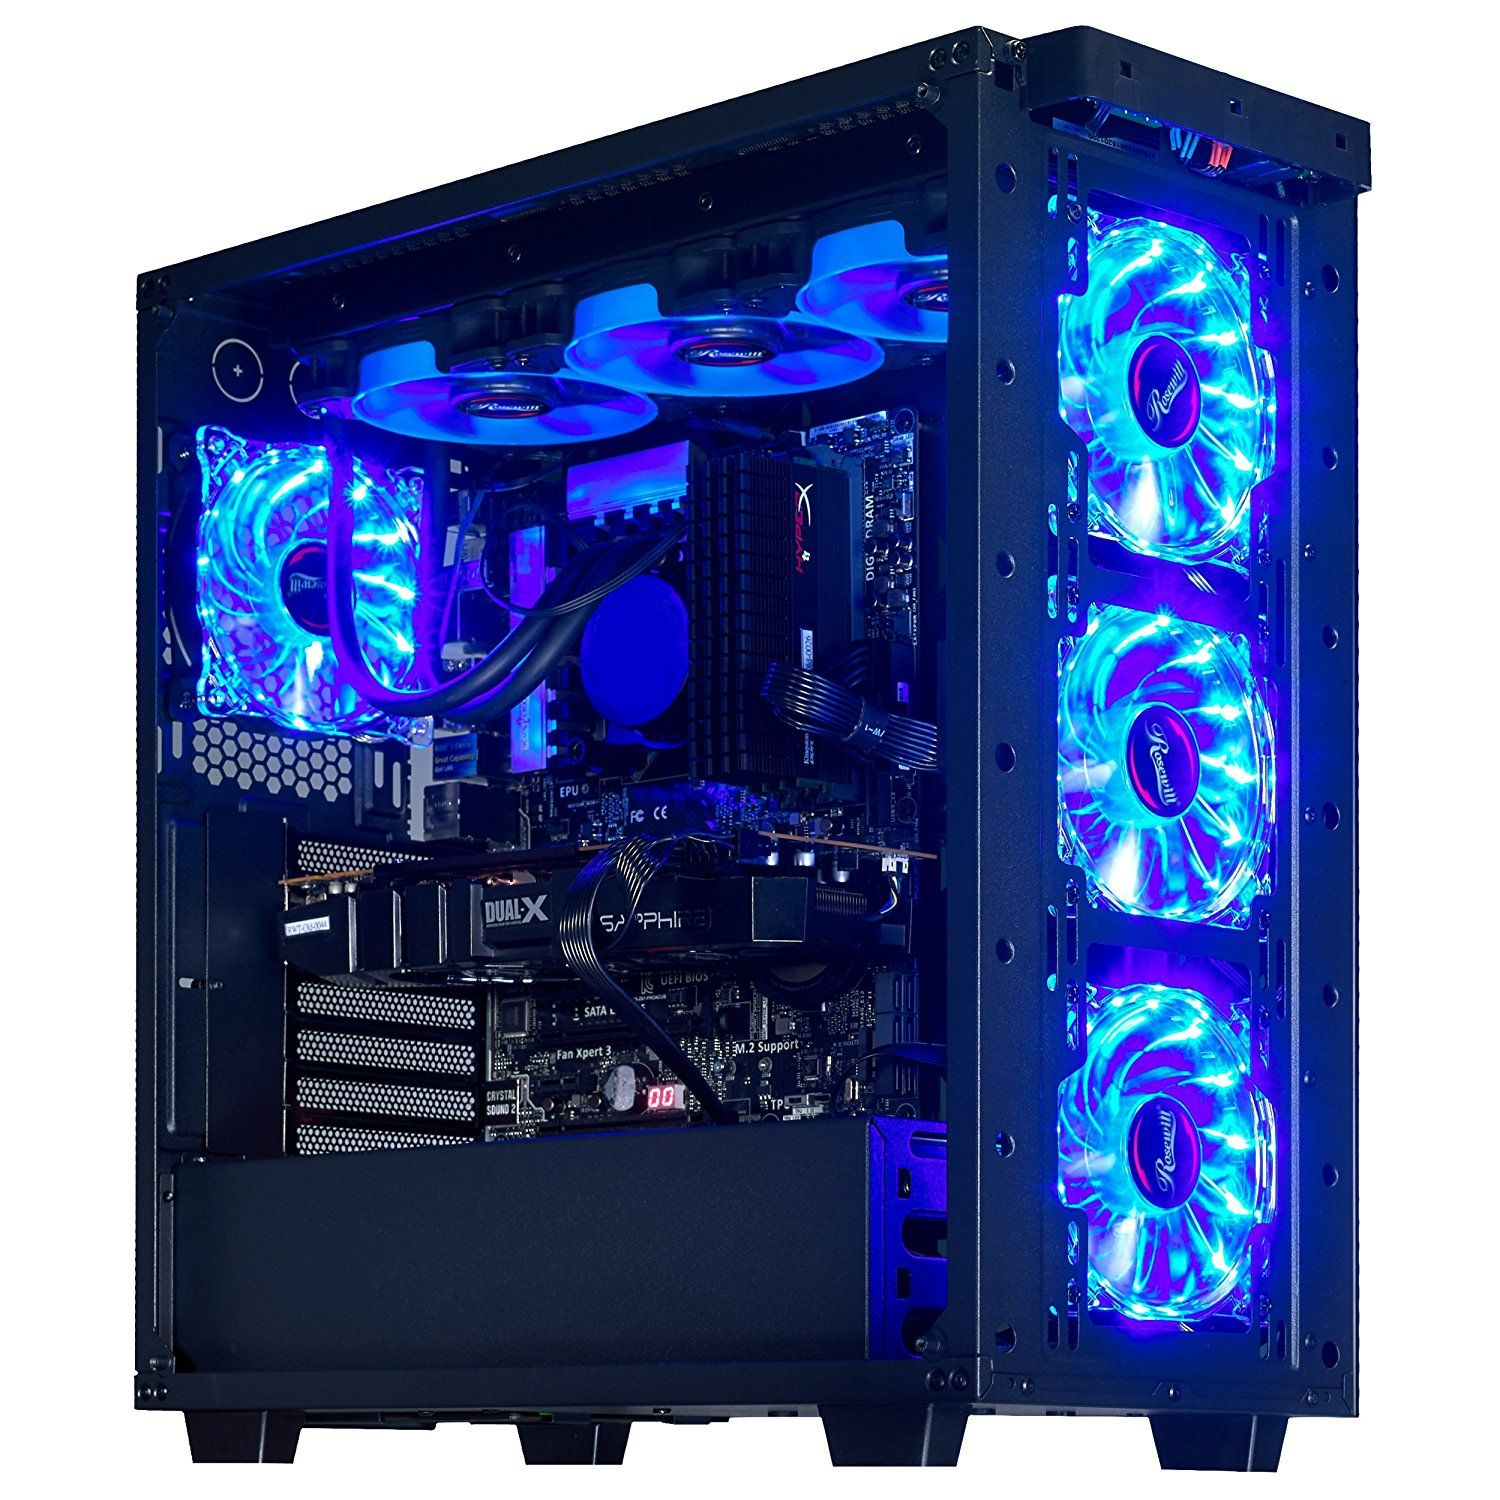 Ibuypower S Liquid Cooled Erebus Chassis Is Designed To Maximize